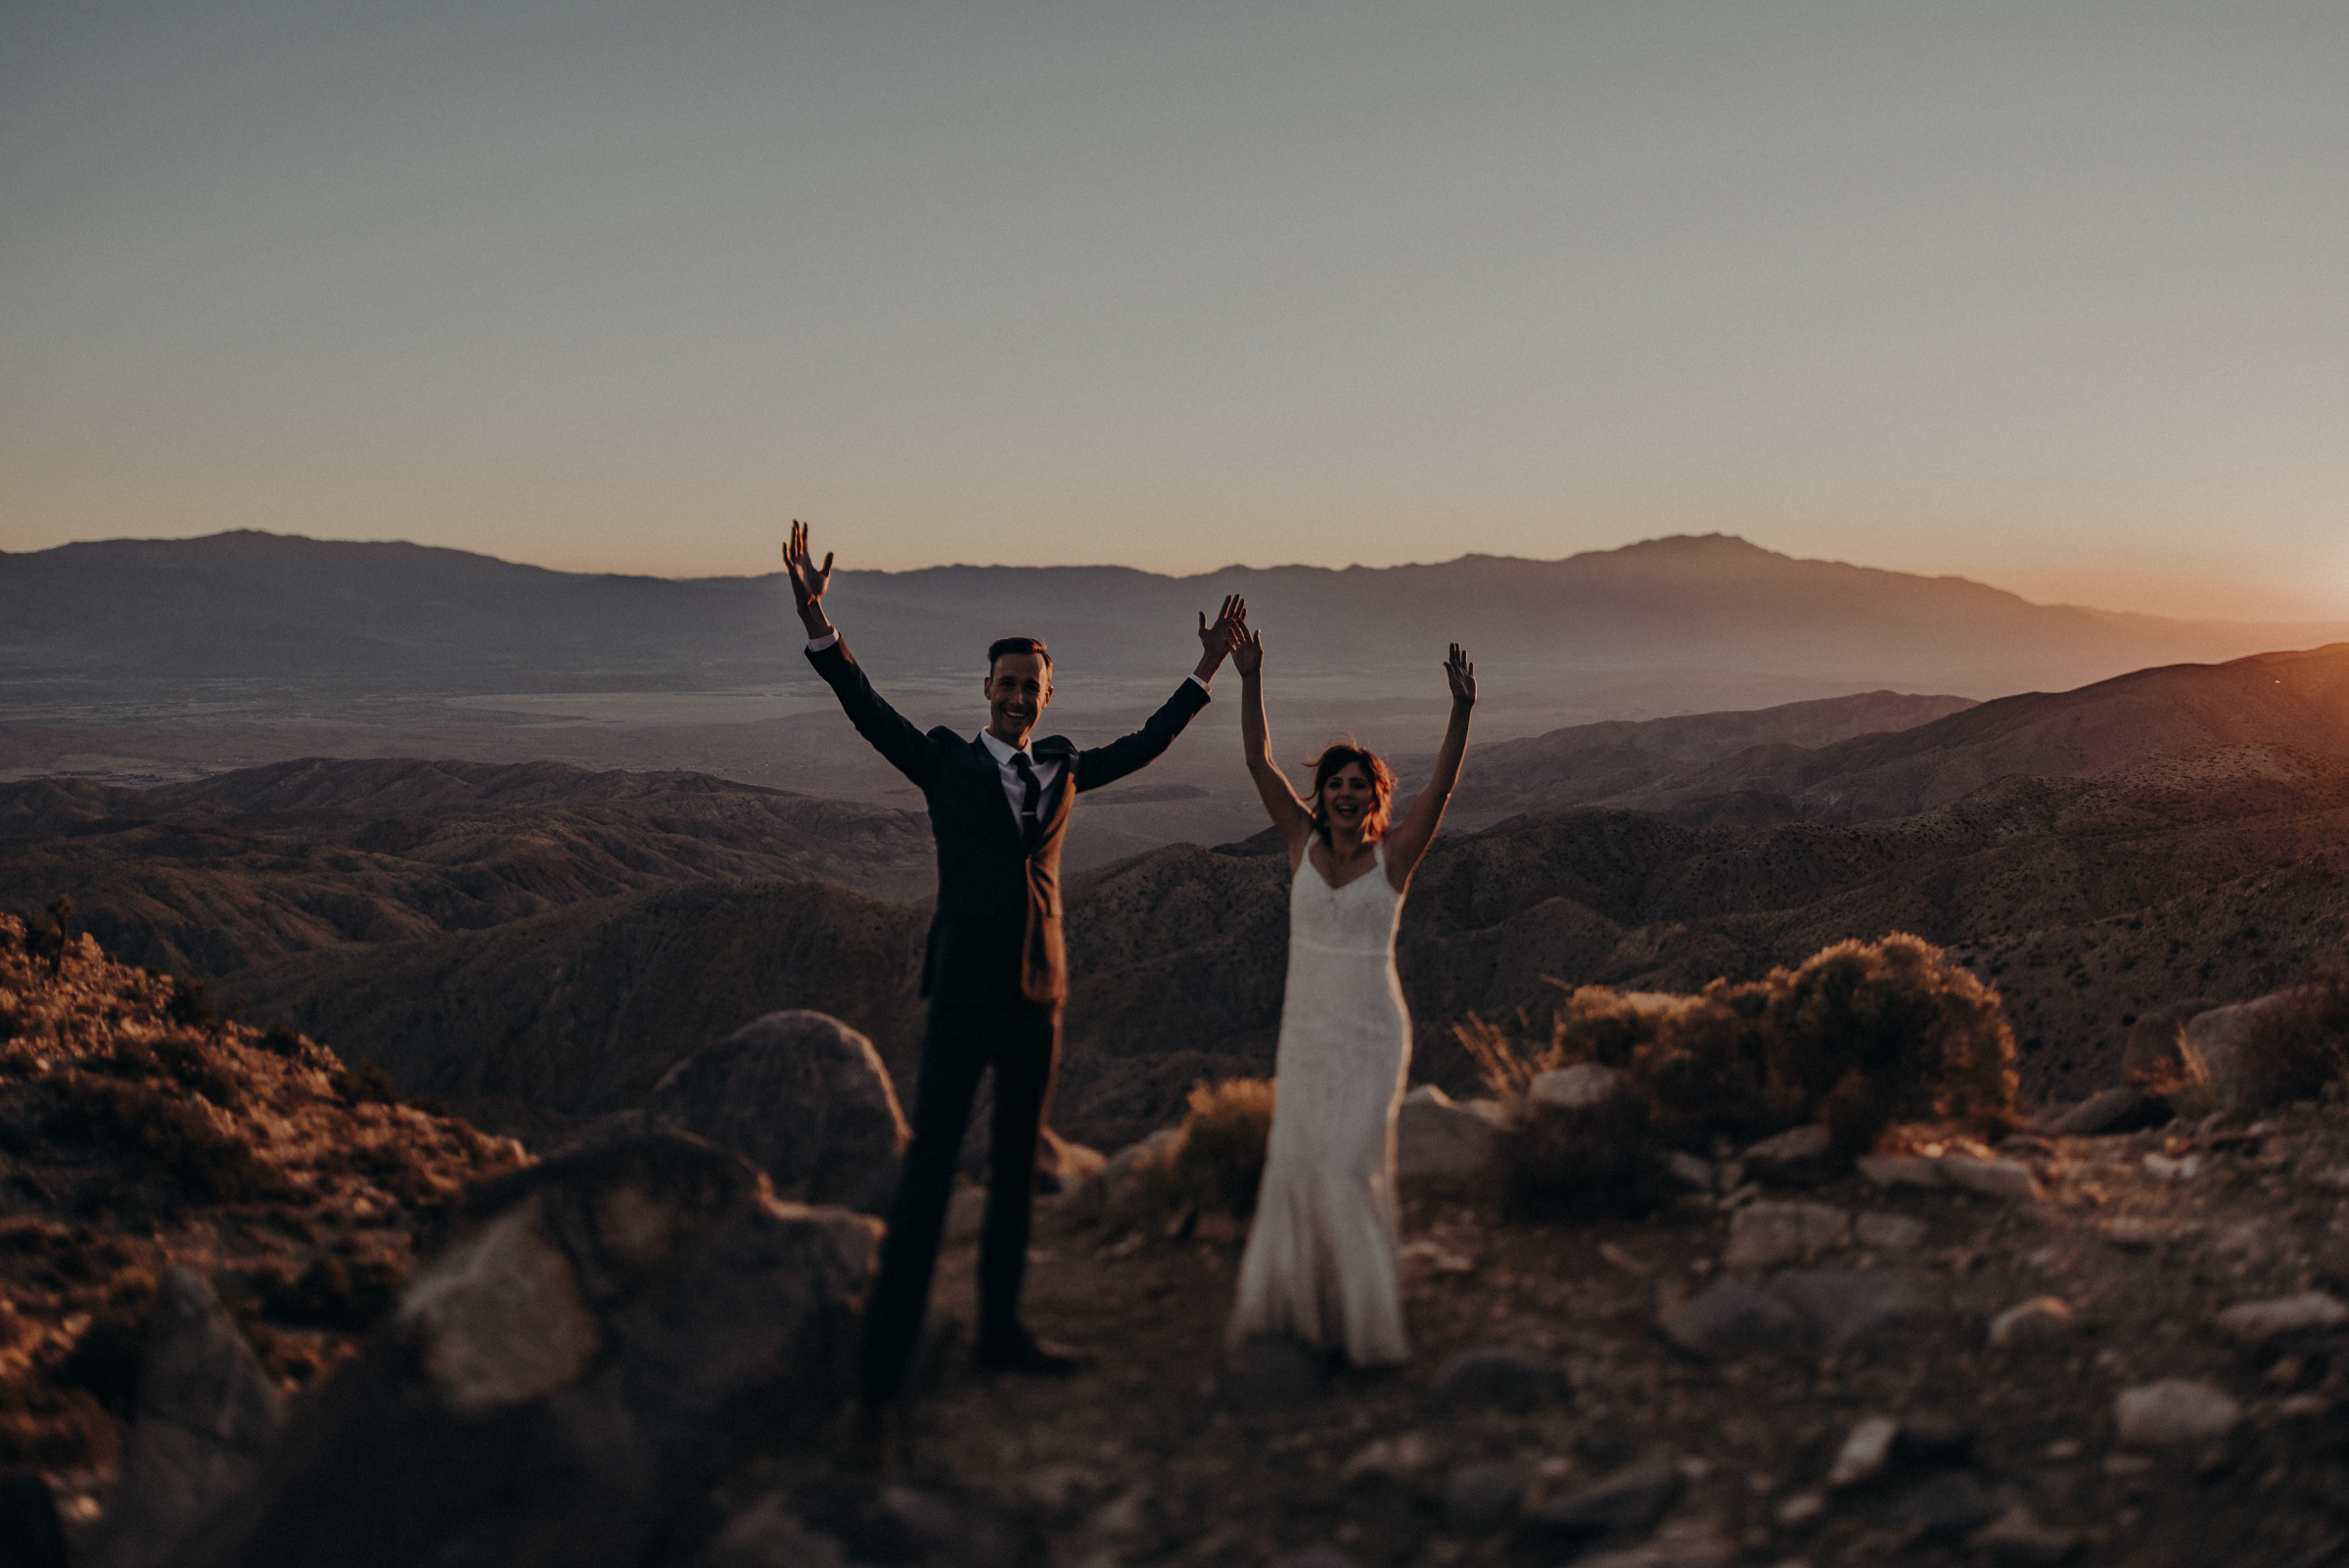 Joshua Tree Elopement - Los Angeles Wedding Photographers - IsaiahAndTaylor.com-111.jpg